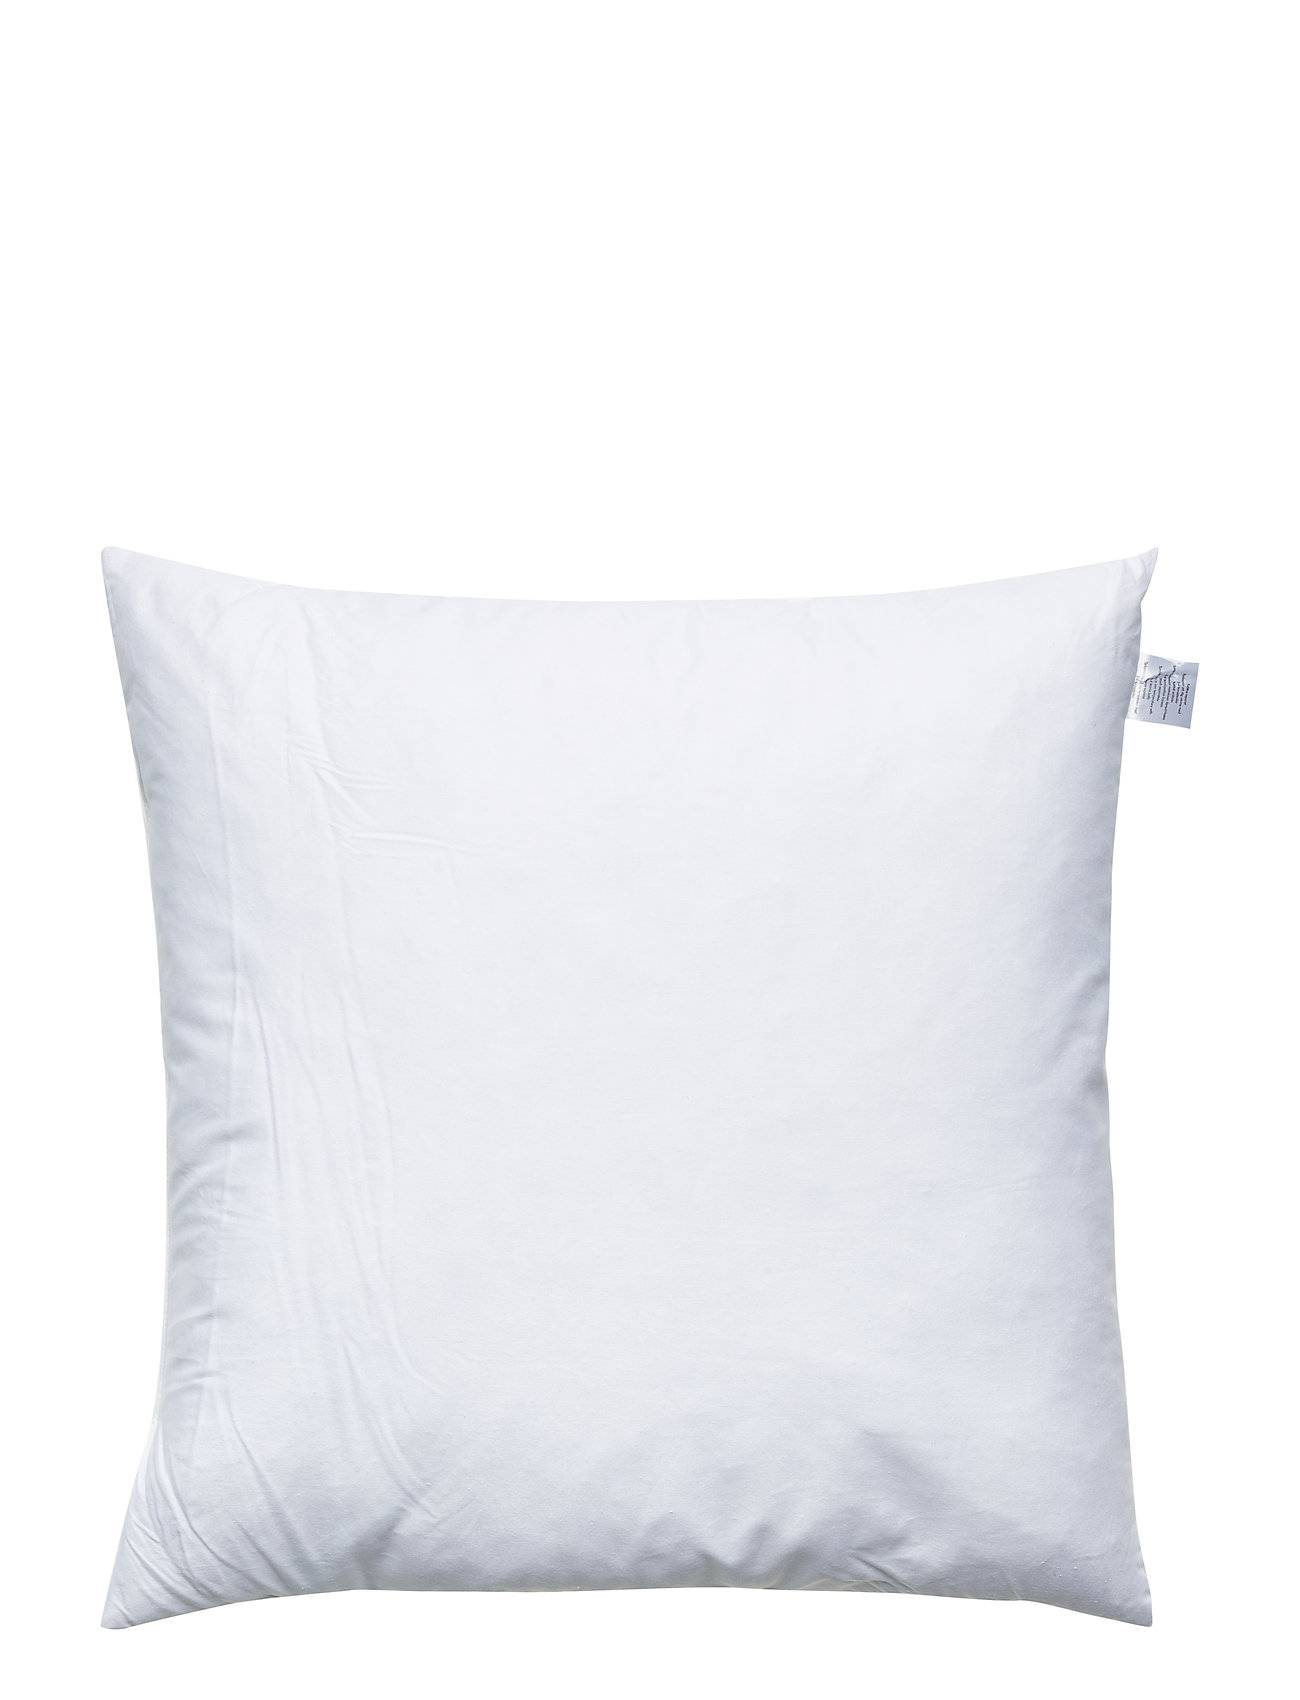 Gripsholm Inner Cushion Feather